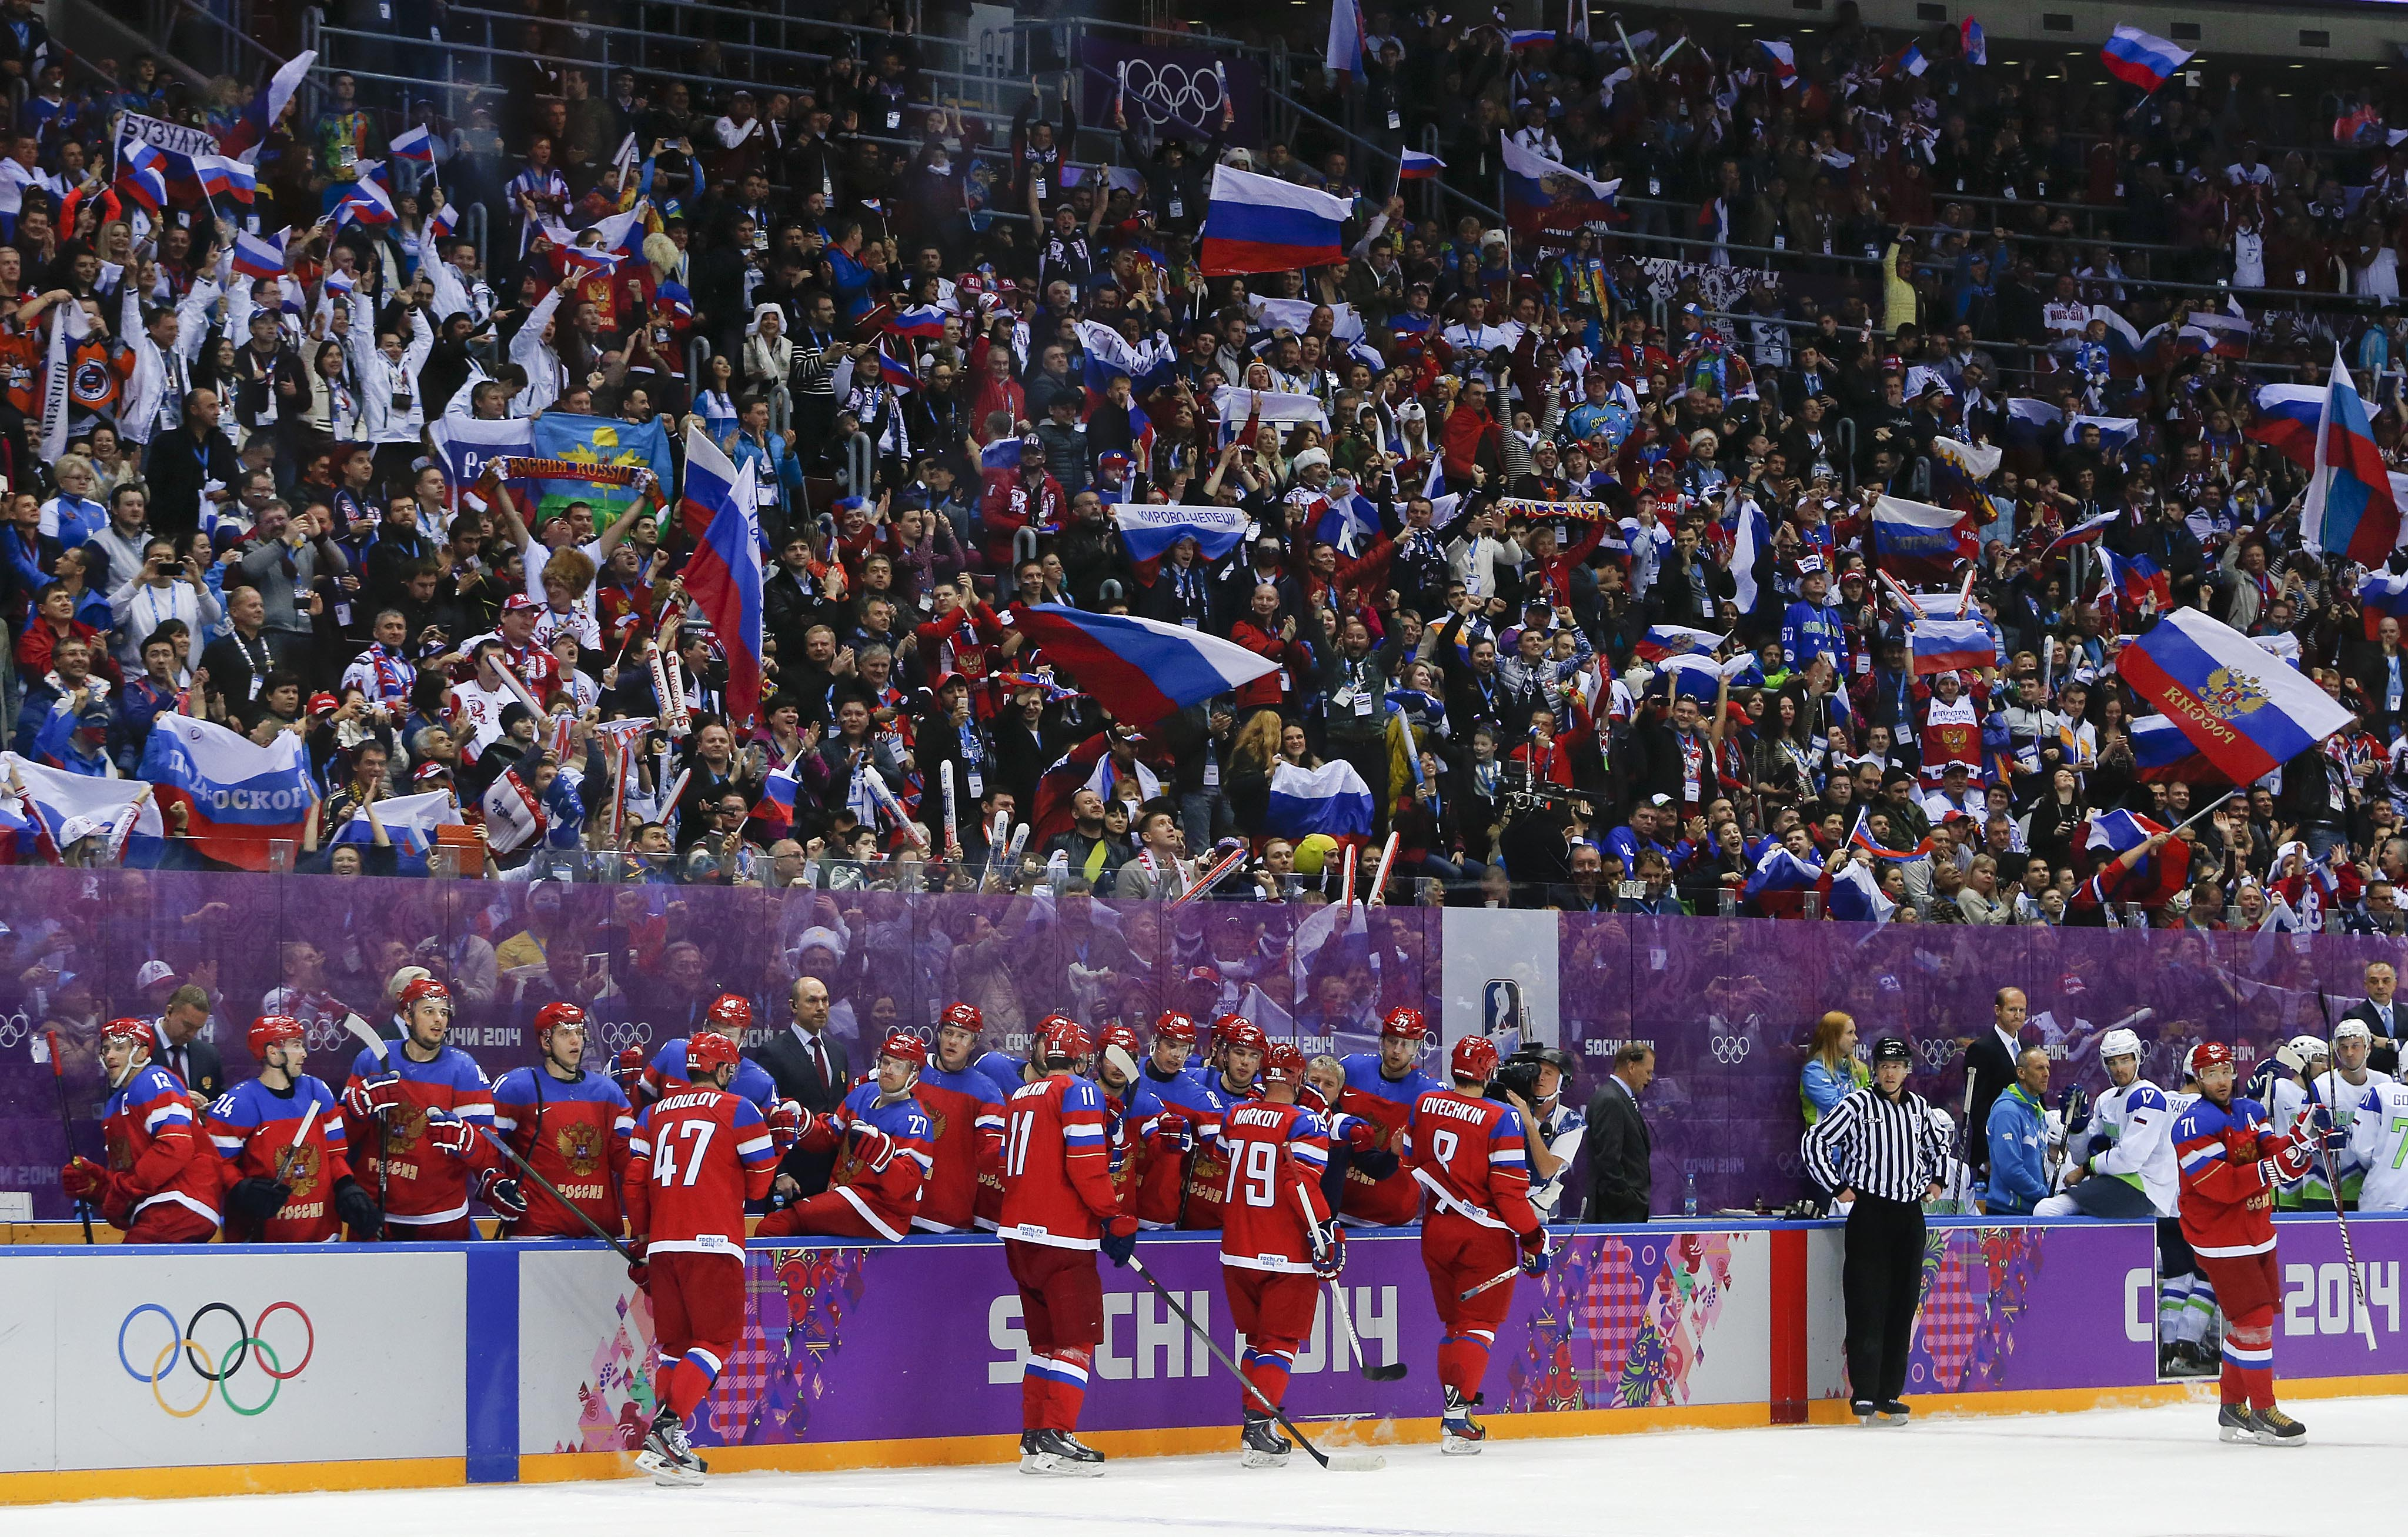 Fans cheer a goal by the team Russia against Slovenia in the second period of a men's ice hockey game at the 2014 Winter Olympics, Thursday, Feb. 13, 2014, in Sochi, Russia. (AP Photo/Julio Cortez)